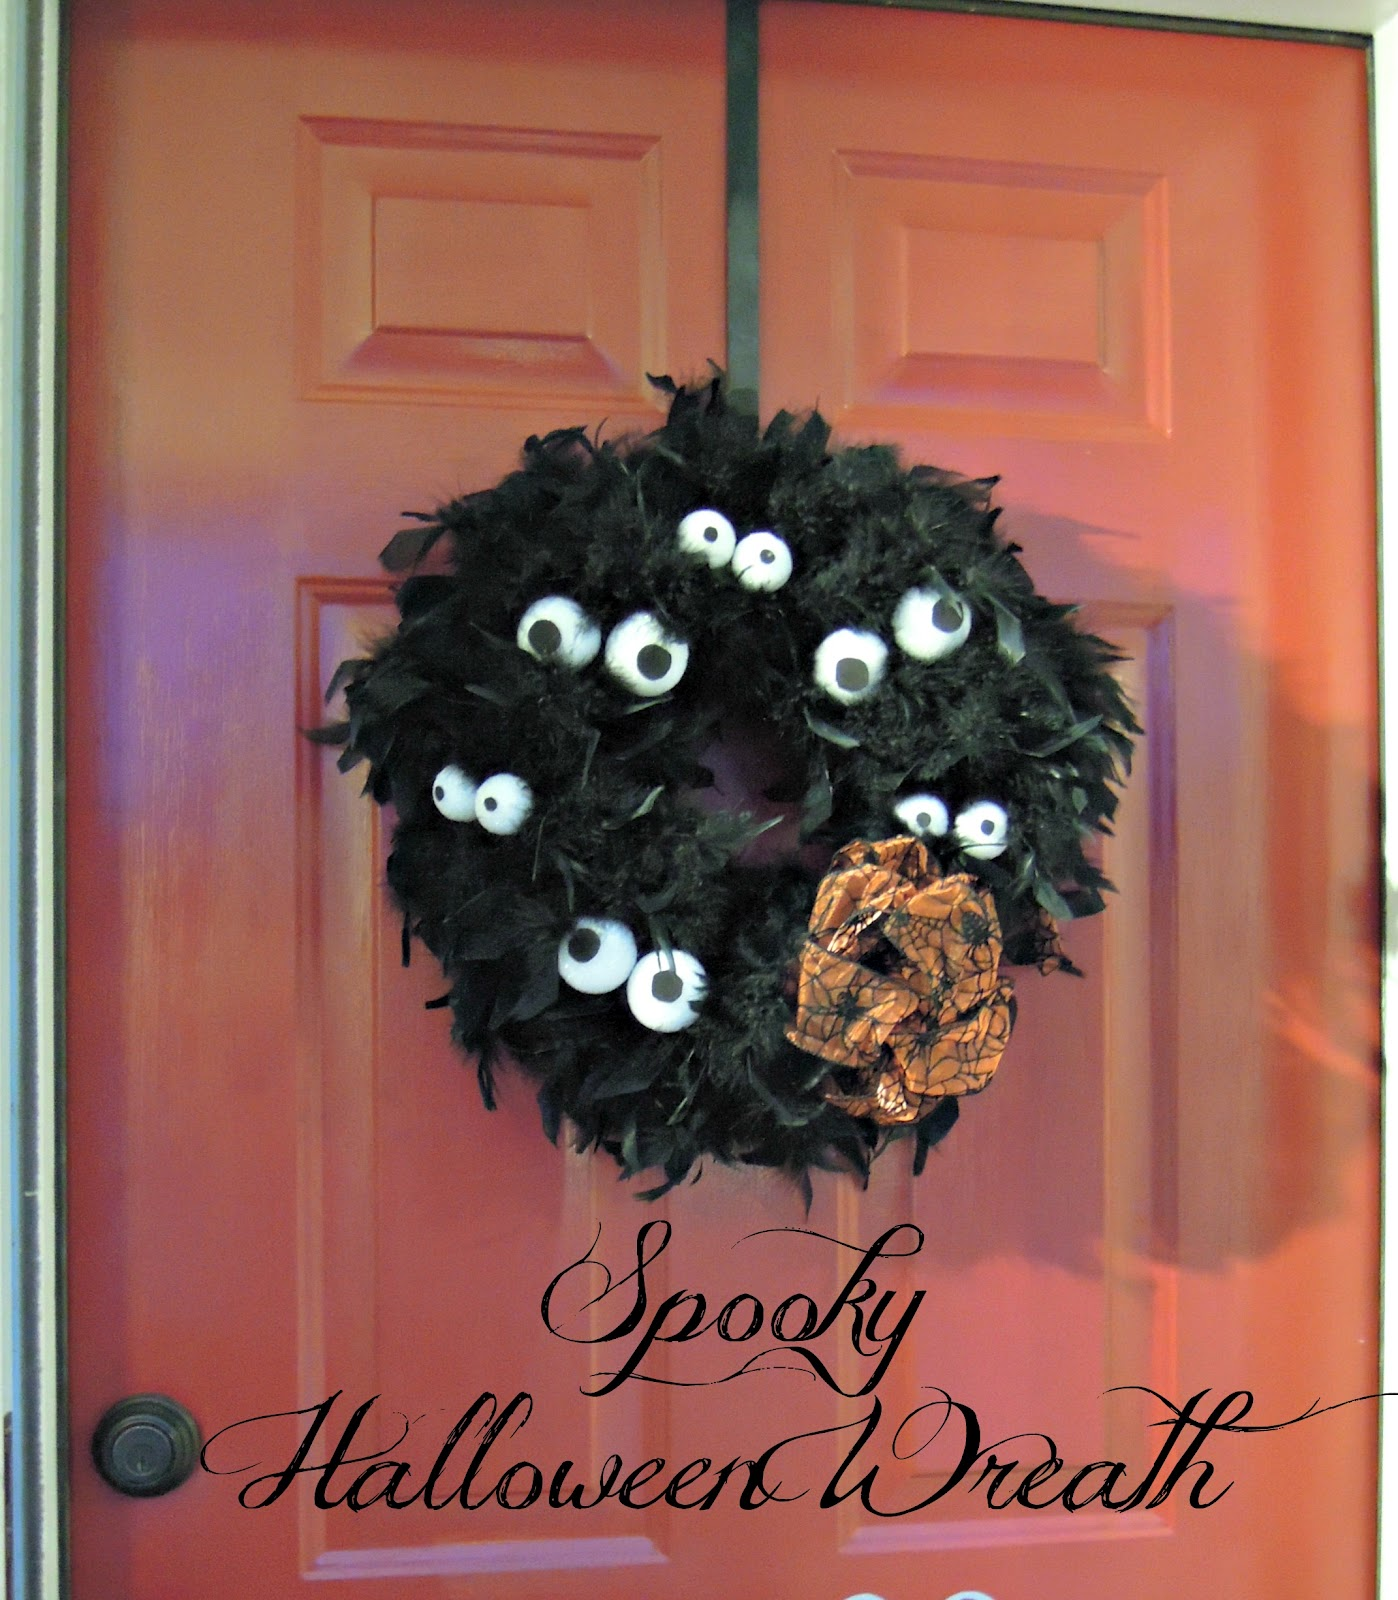 Easy At Home Halloween Decorations: Easy Ideas For Halloween